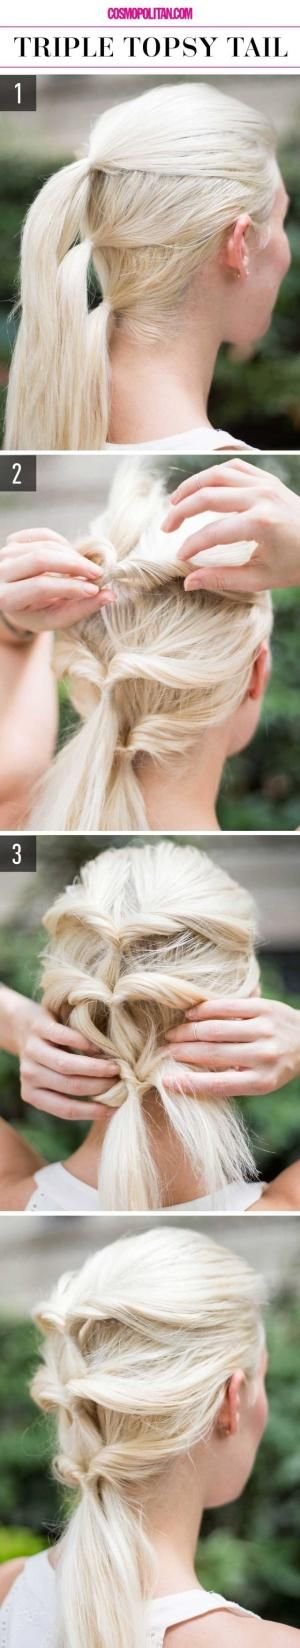 15+Super-Easy+Hairstyles+for+Lazy+Girls+Who+Can't+Even+ - Cosmopolitan.com by vilma